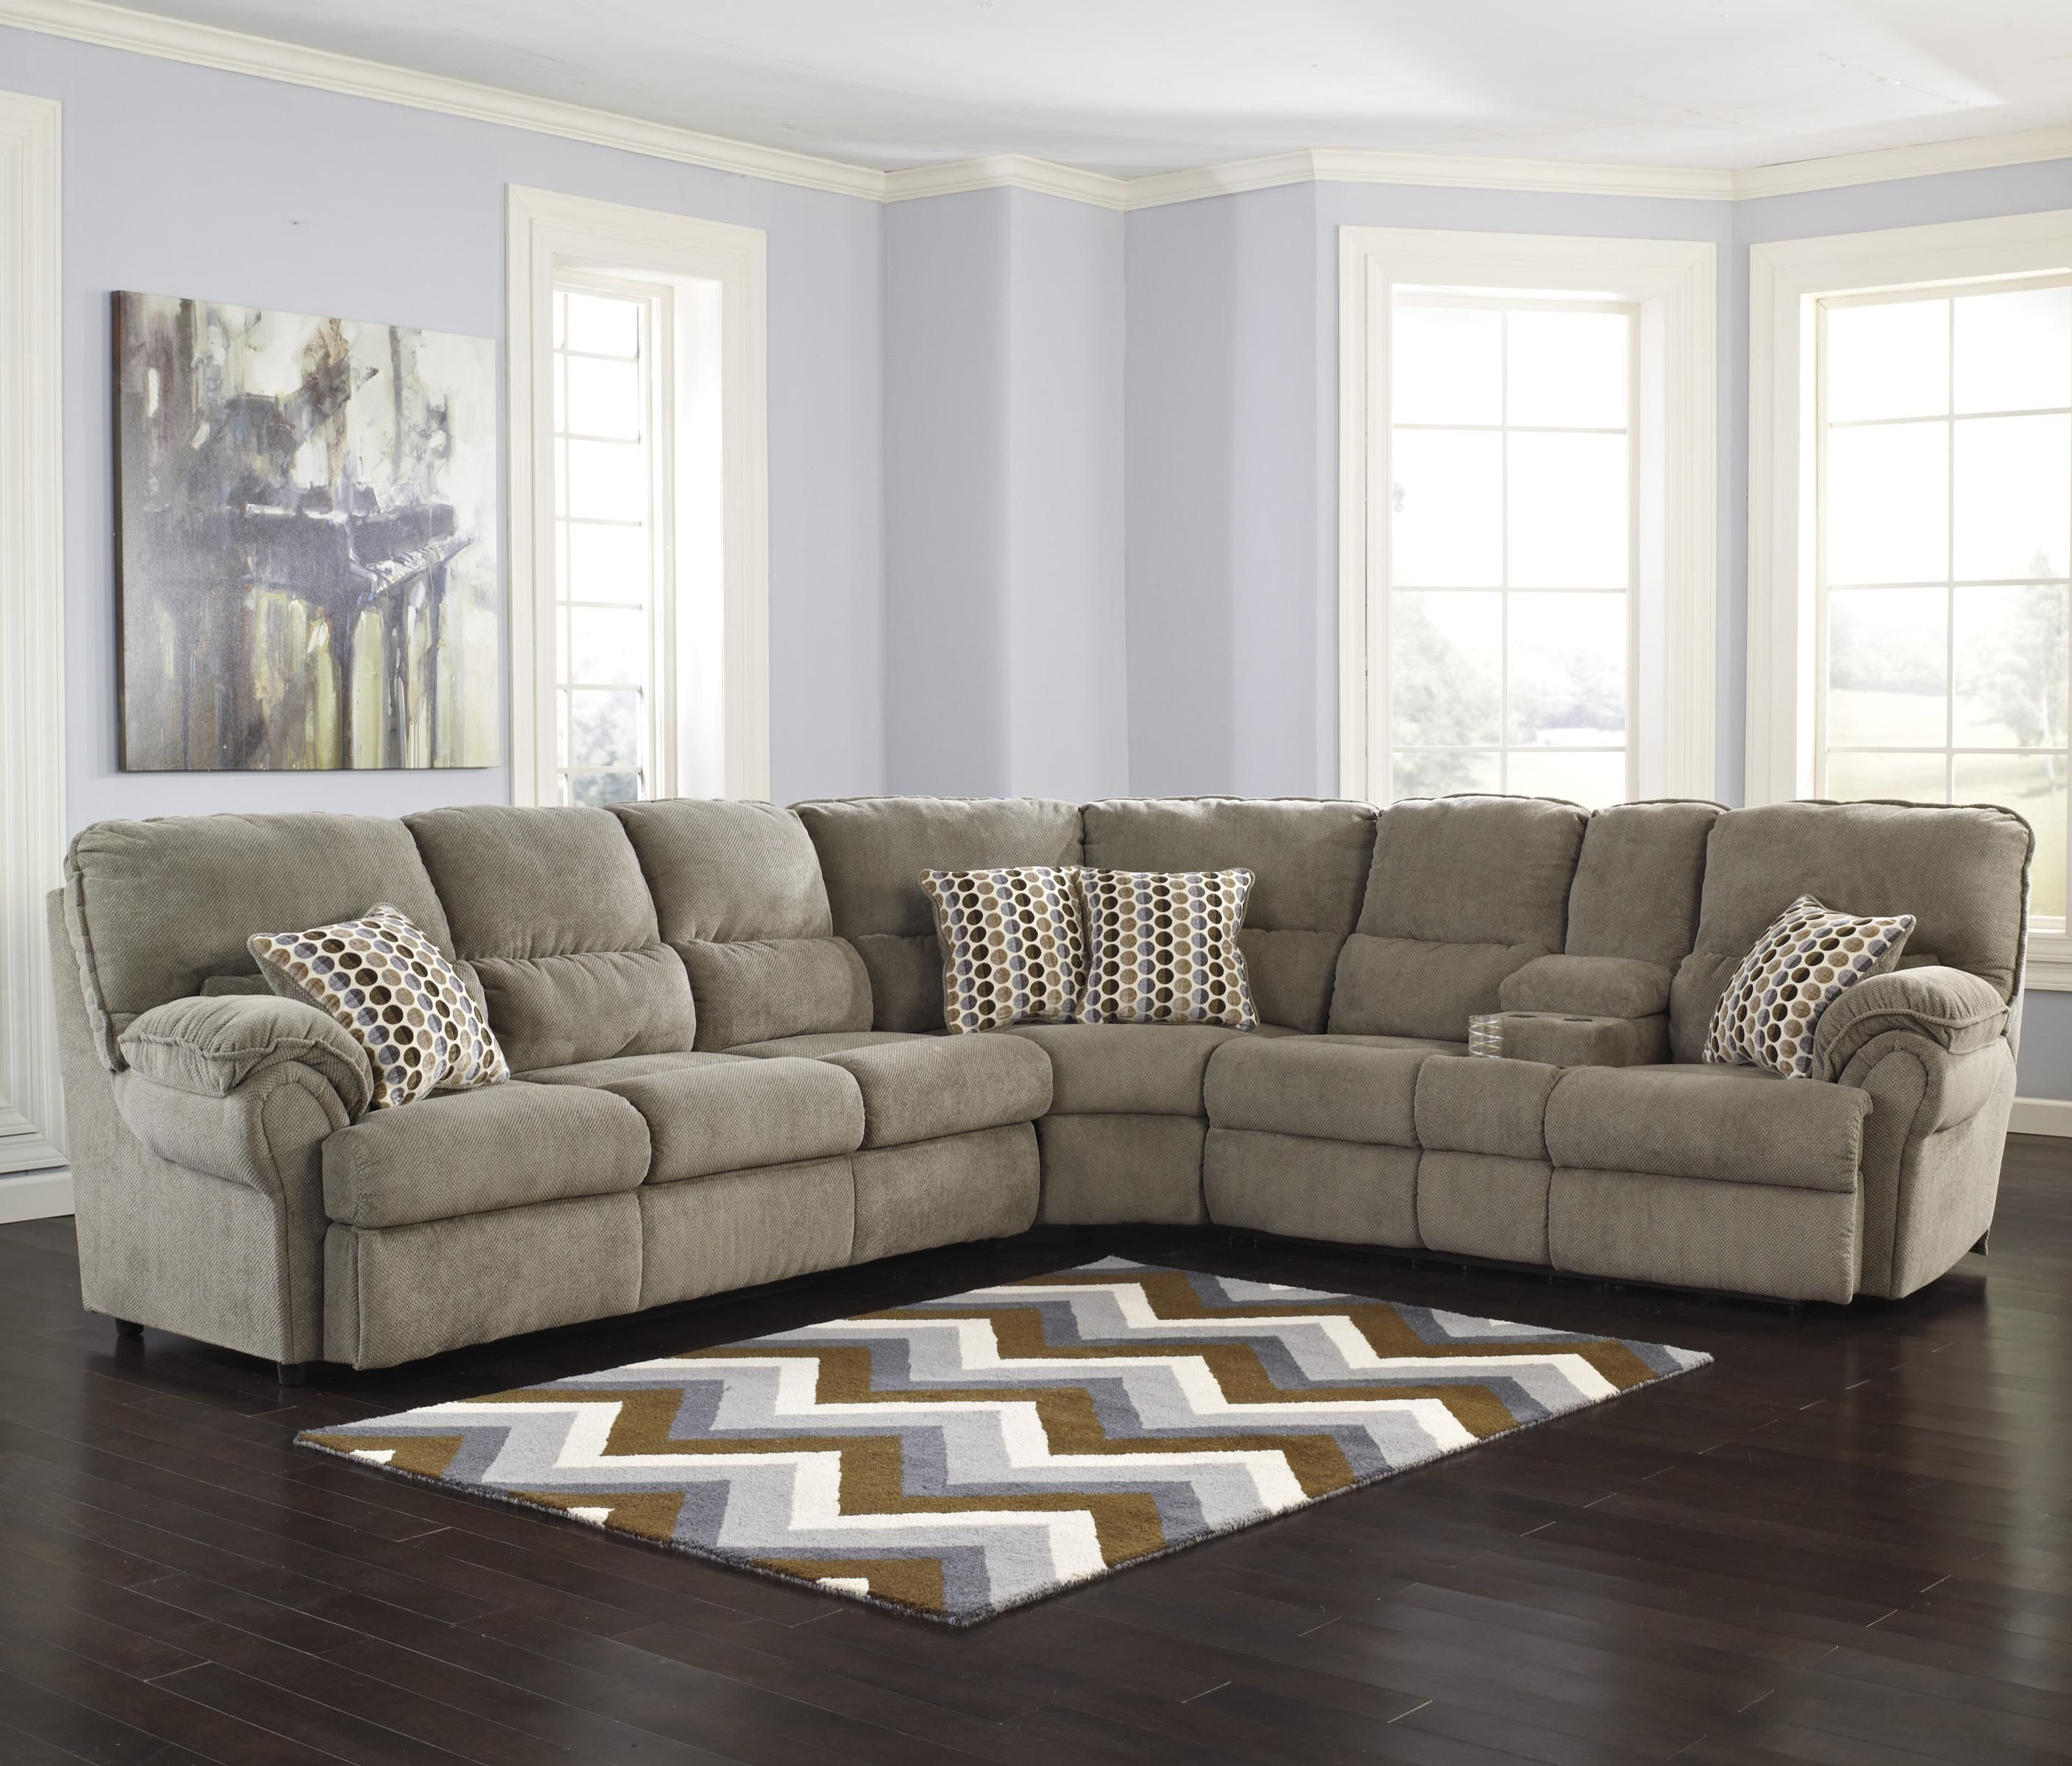 Signature Design By Ashley Comfort Commandor Mocha Sectional W Reclining Loveseat With Console Left Sleeper Sofa Ahfa